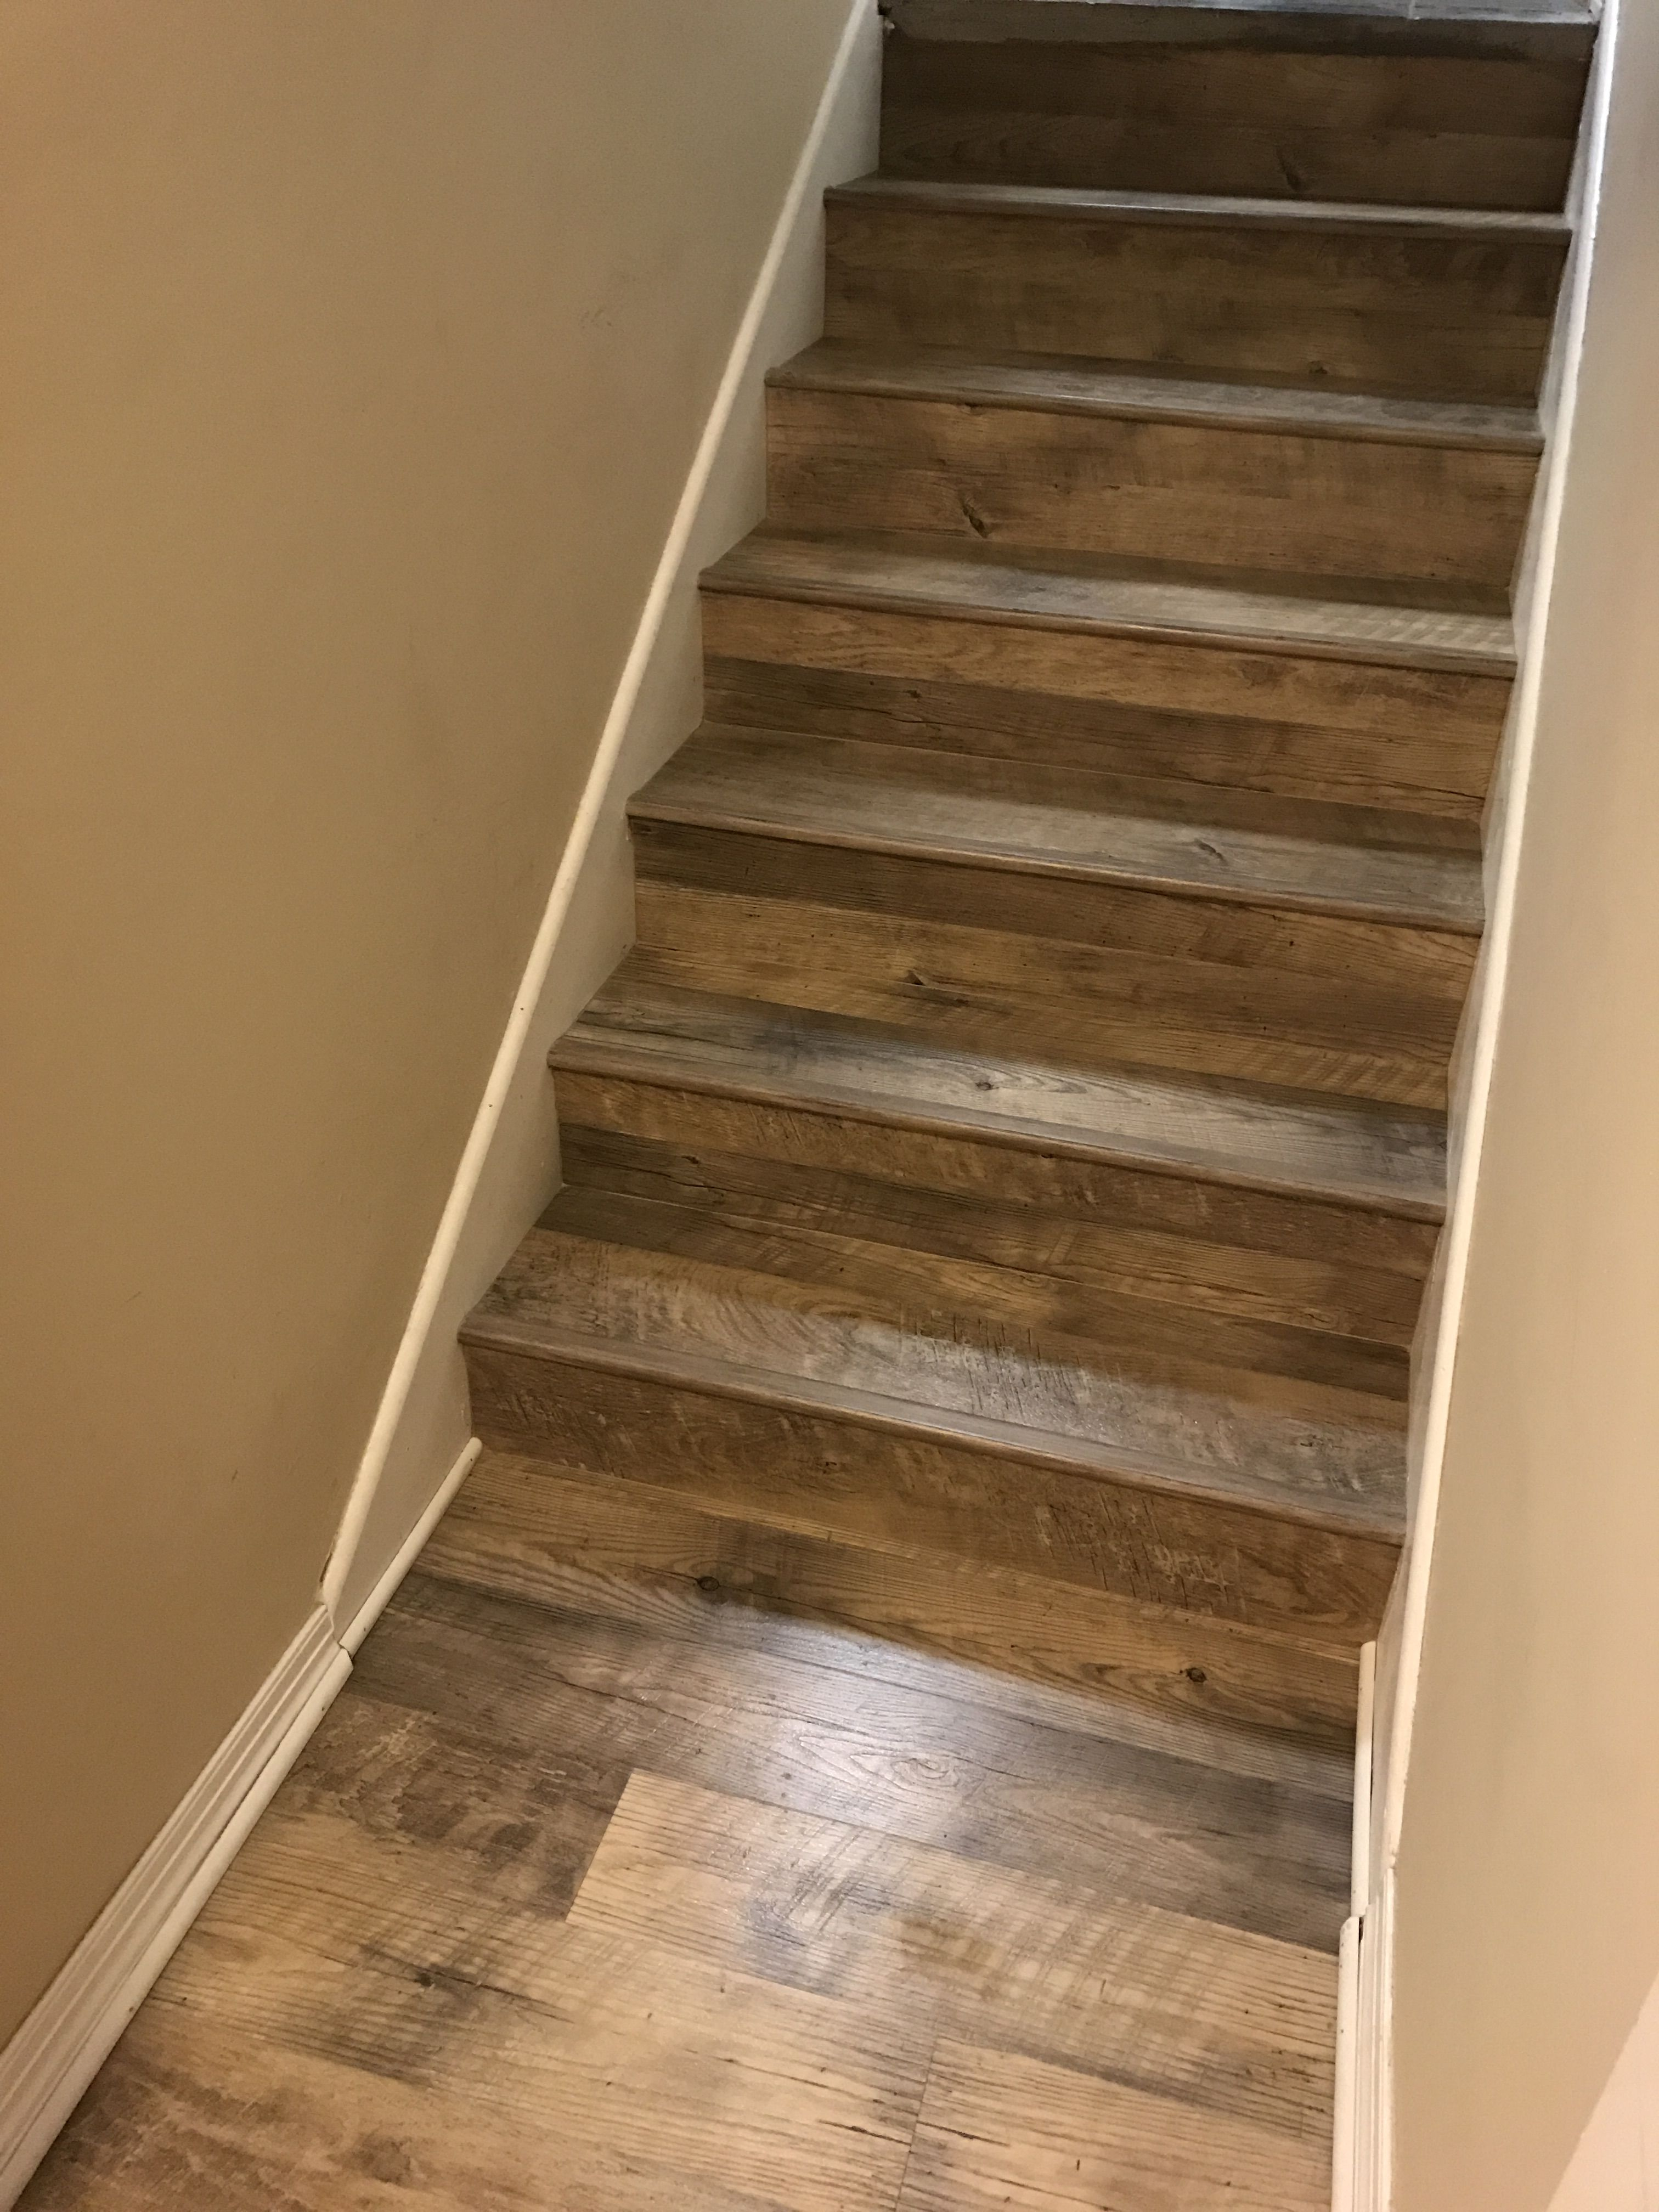 Dockside Sand Mannington Adura Luxury Vinyl Plank Glue Down On Stairs